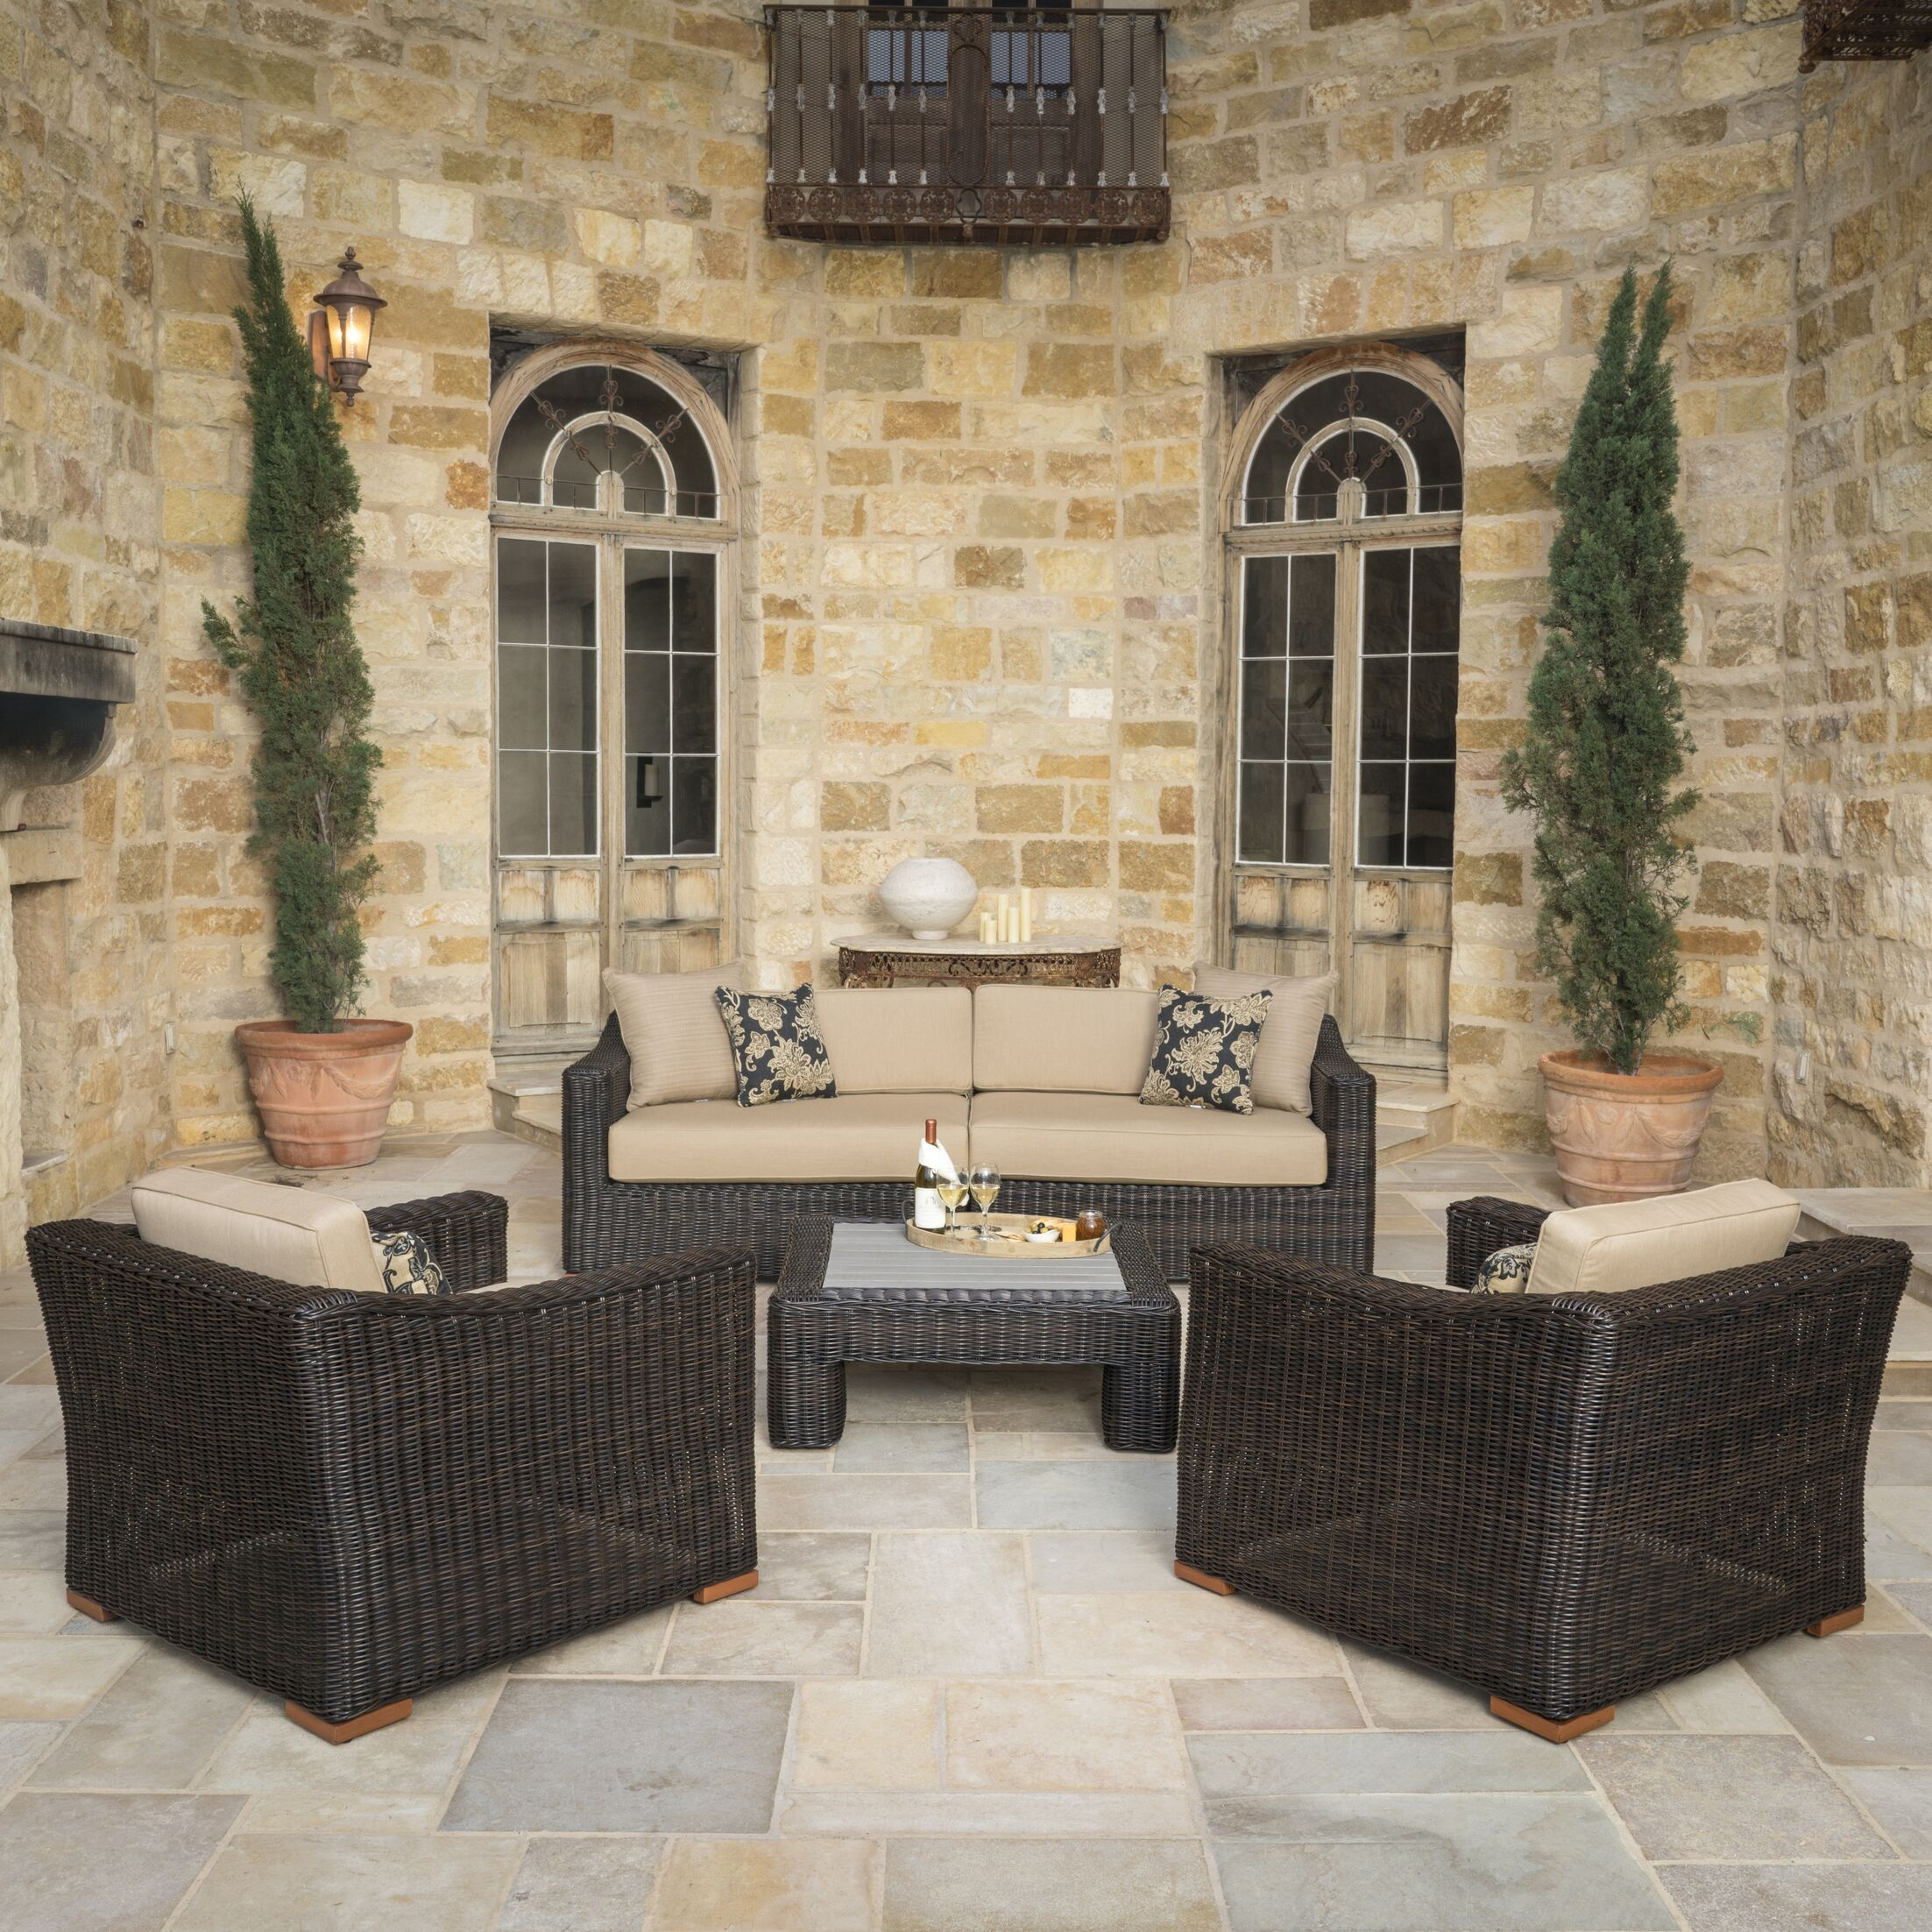 Monroeville 5 piece Sunbrella Sofa Set with Cushions Fabric: Frank Stone